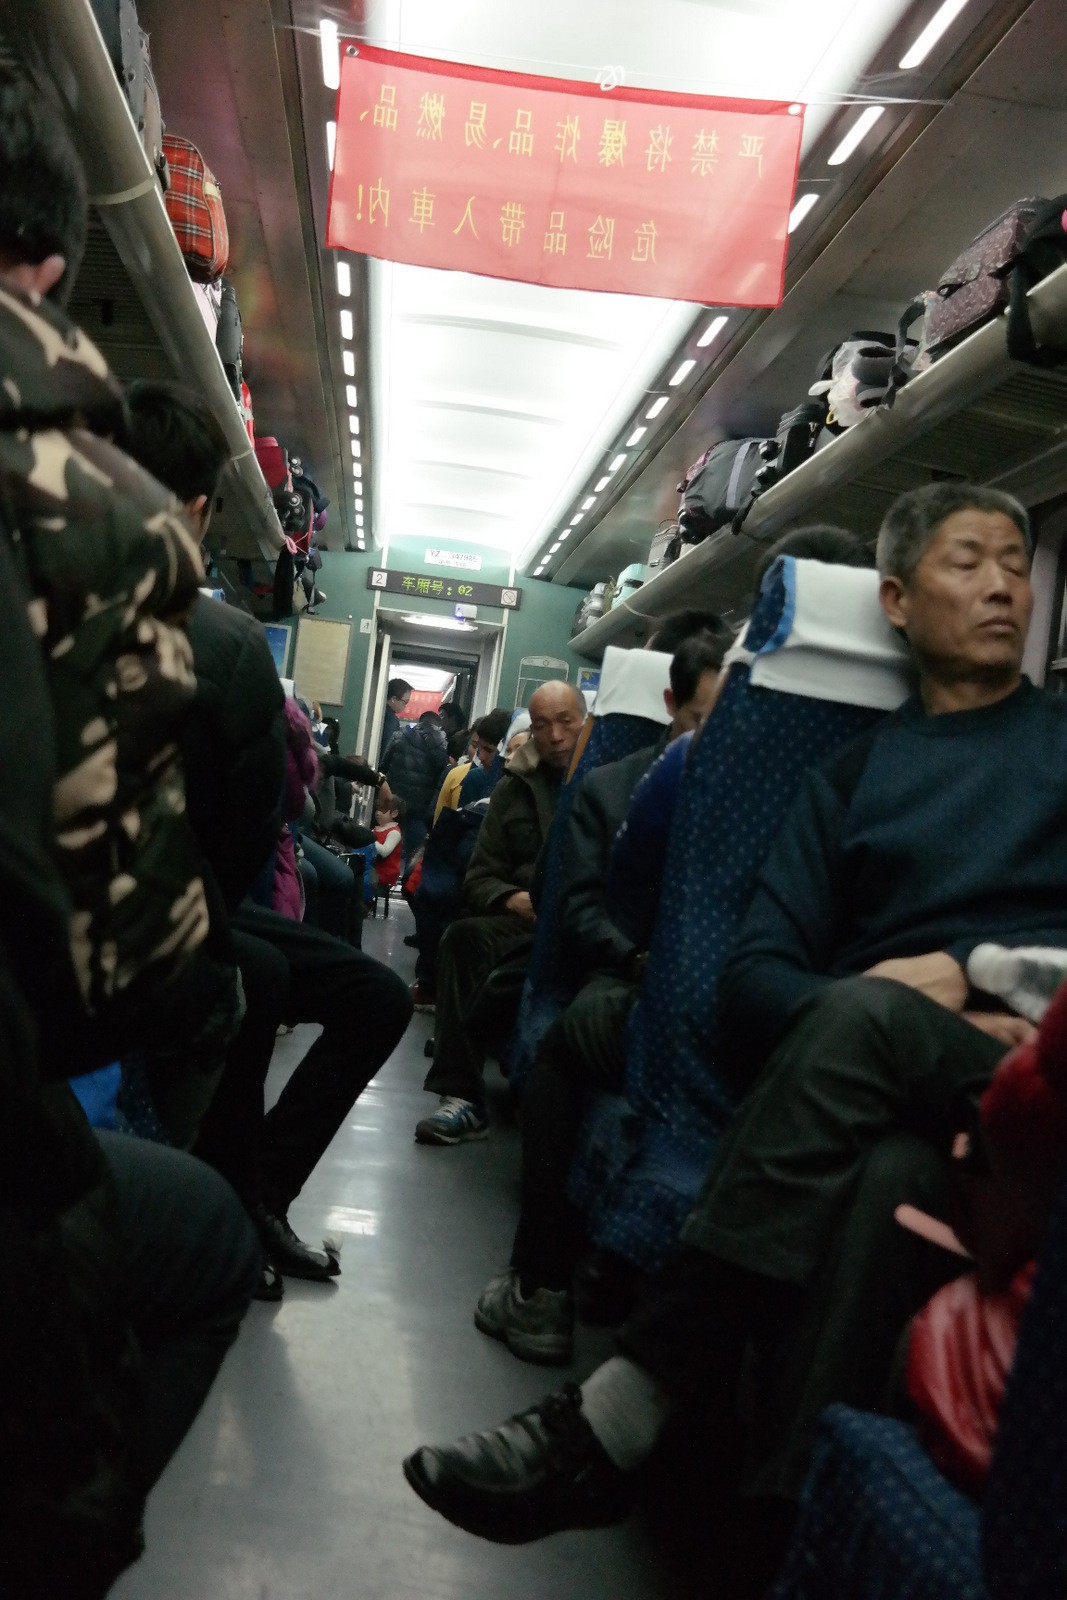 China - Train - Hard Seat Wagon